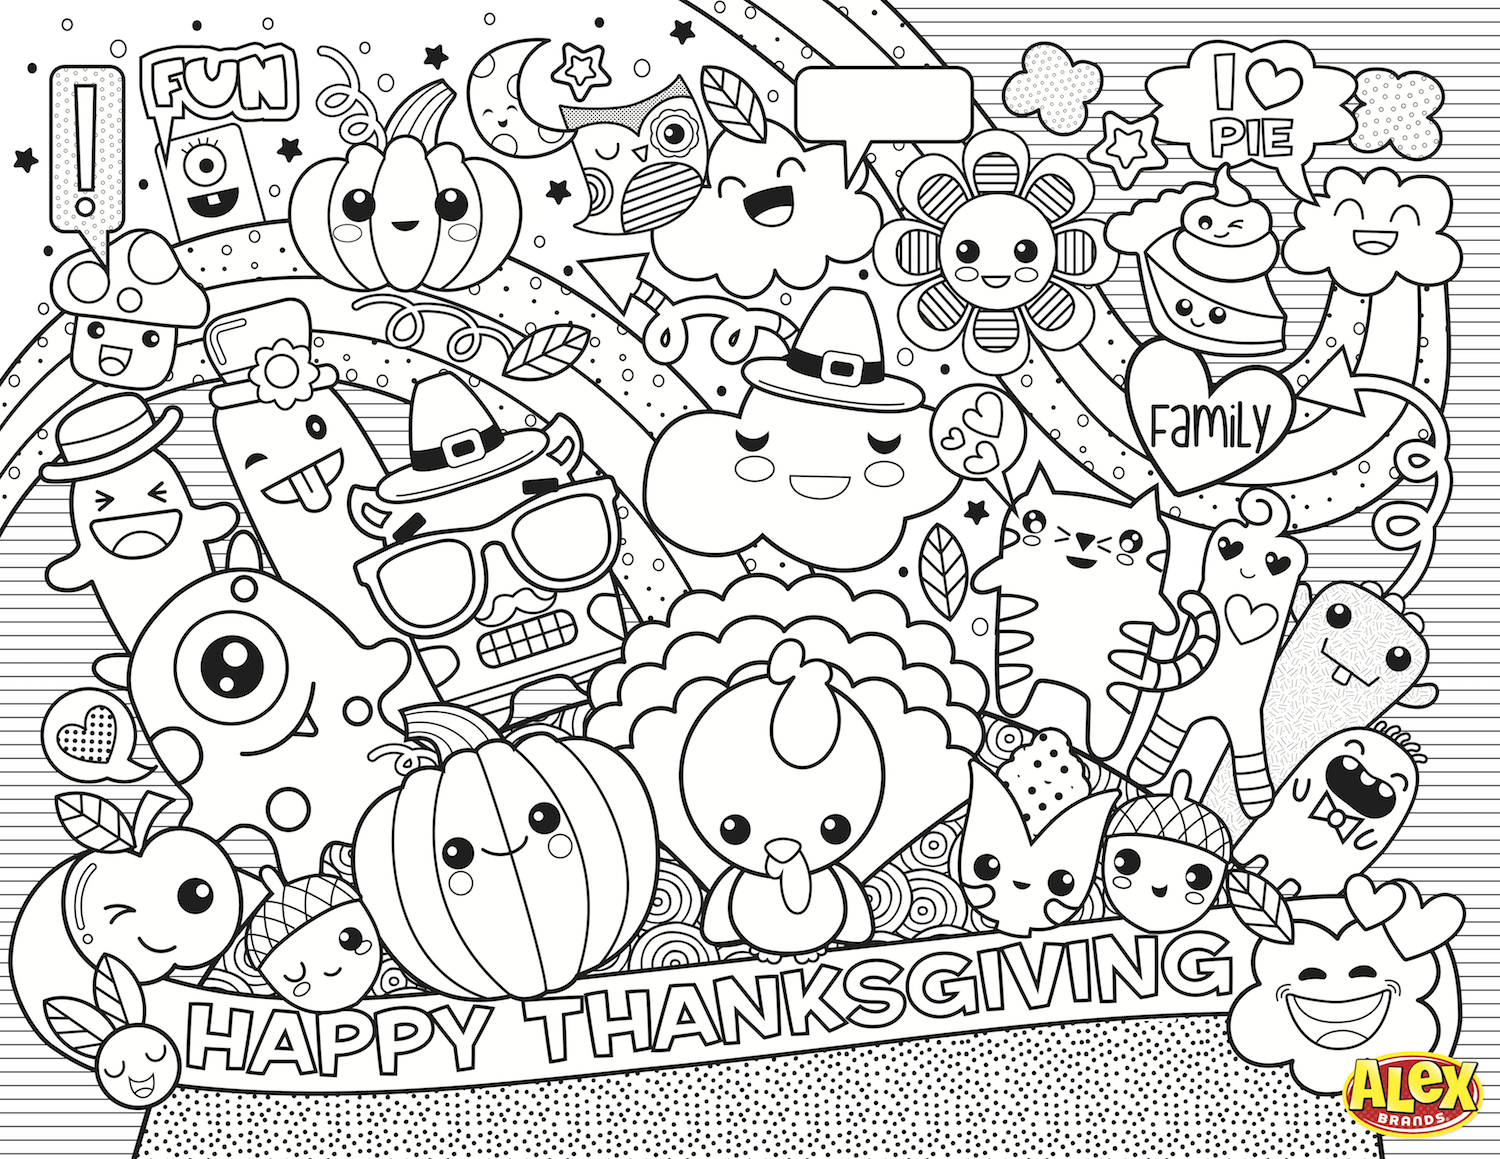 225+ Free Thanksgiving Printables And Coloring Pages For Kids - Free Printable Thanksgiving Coloring Placemats